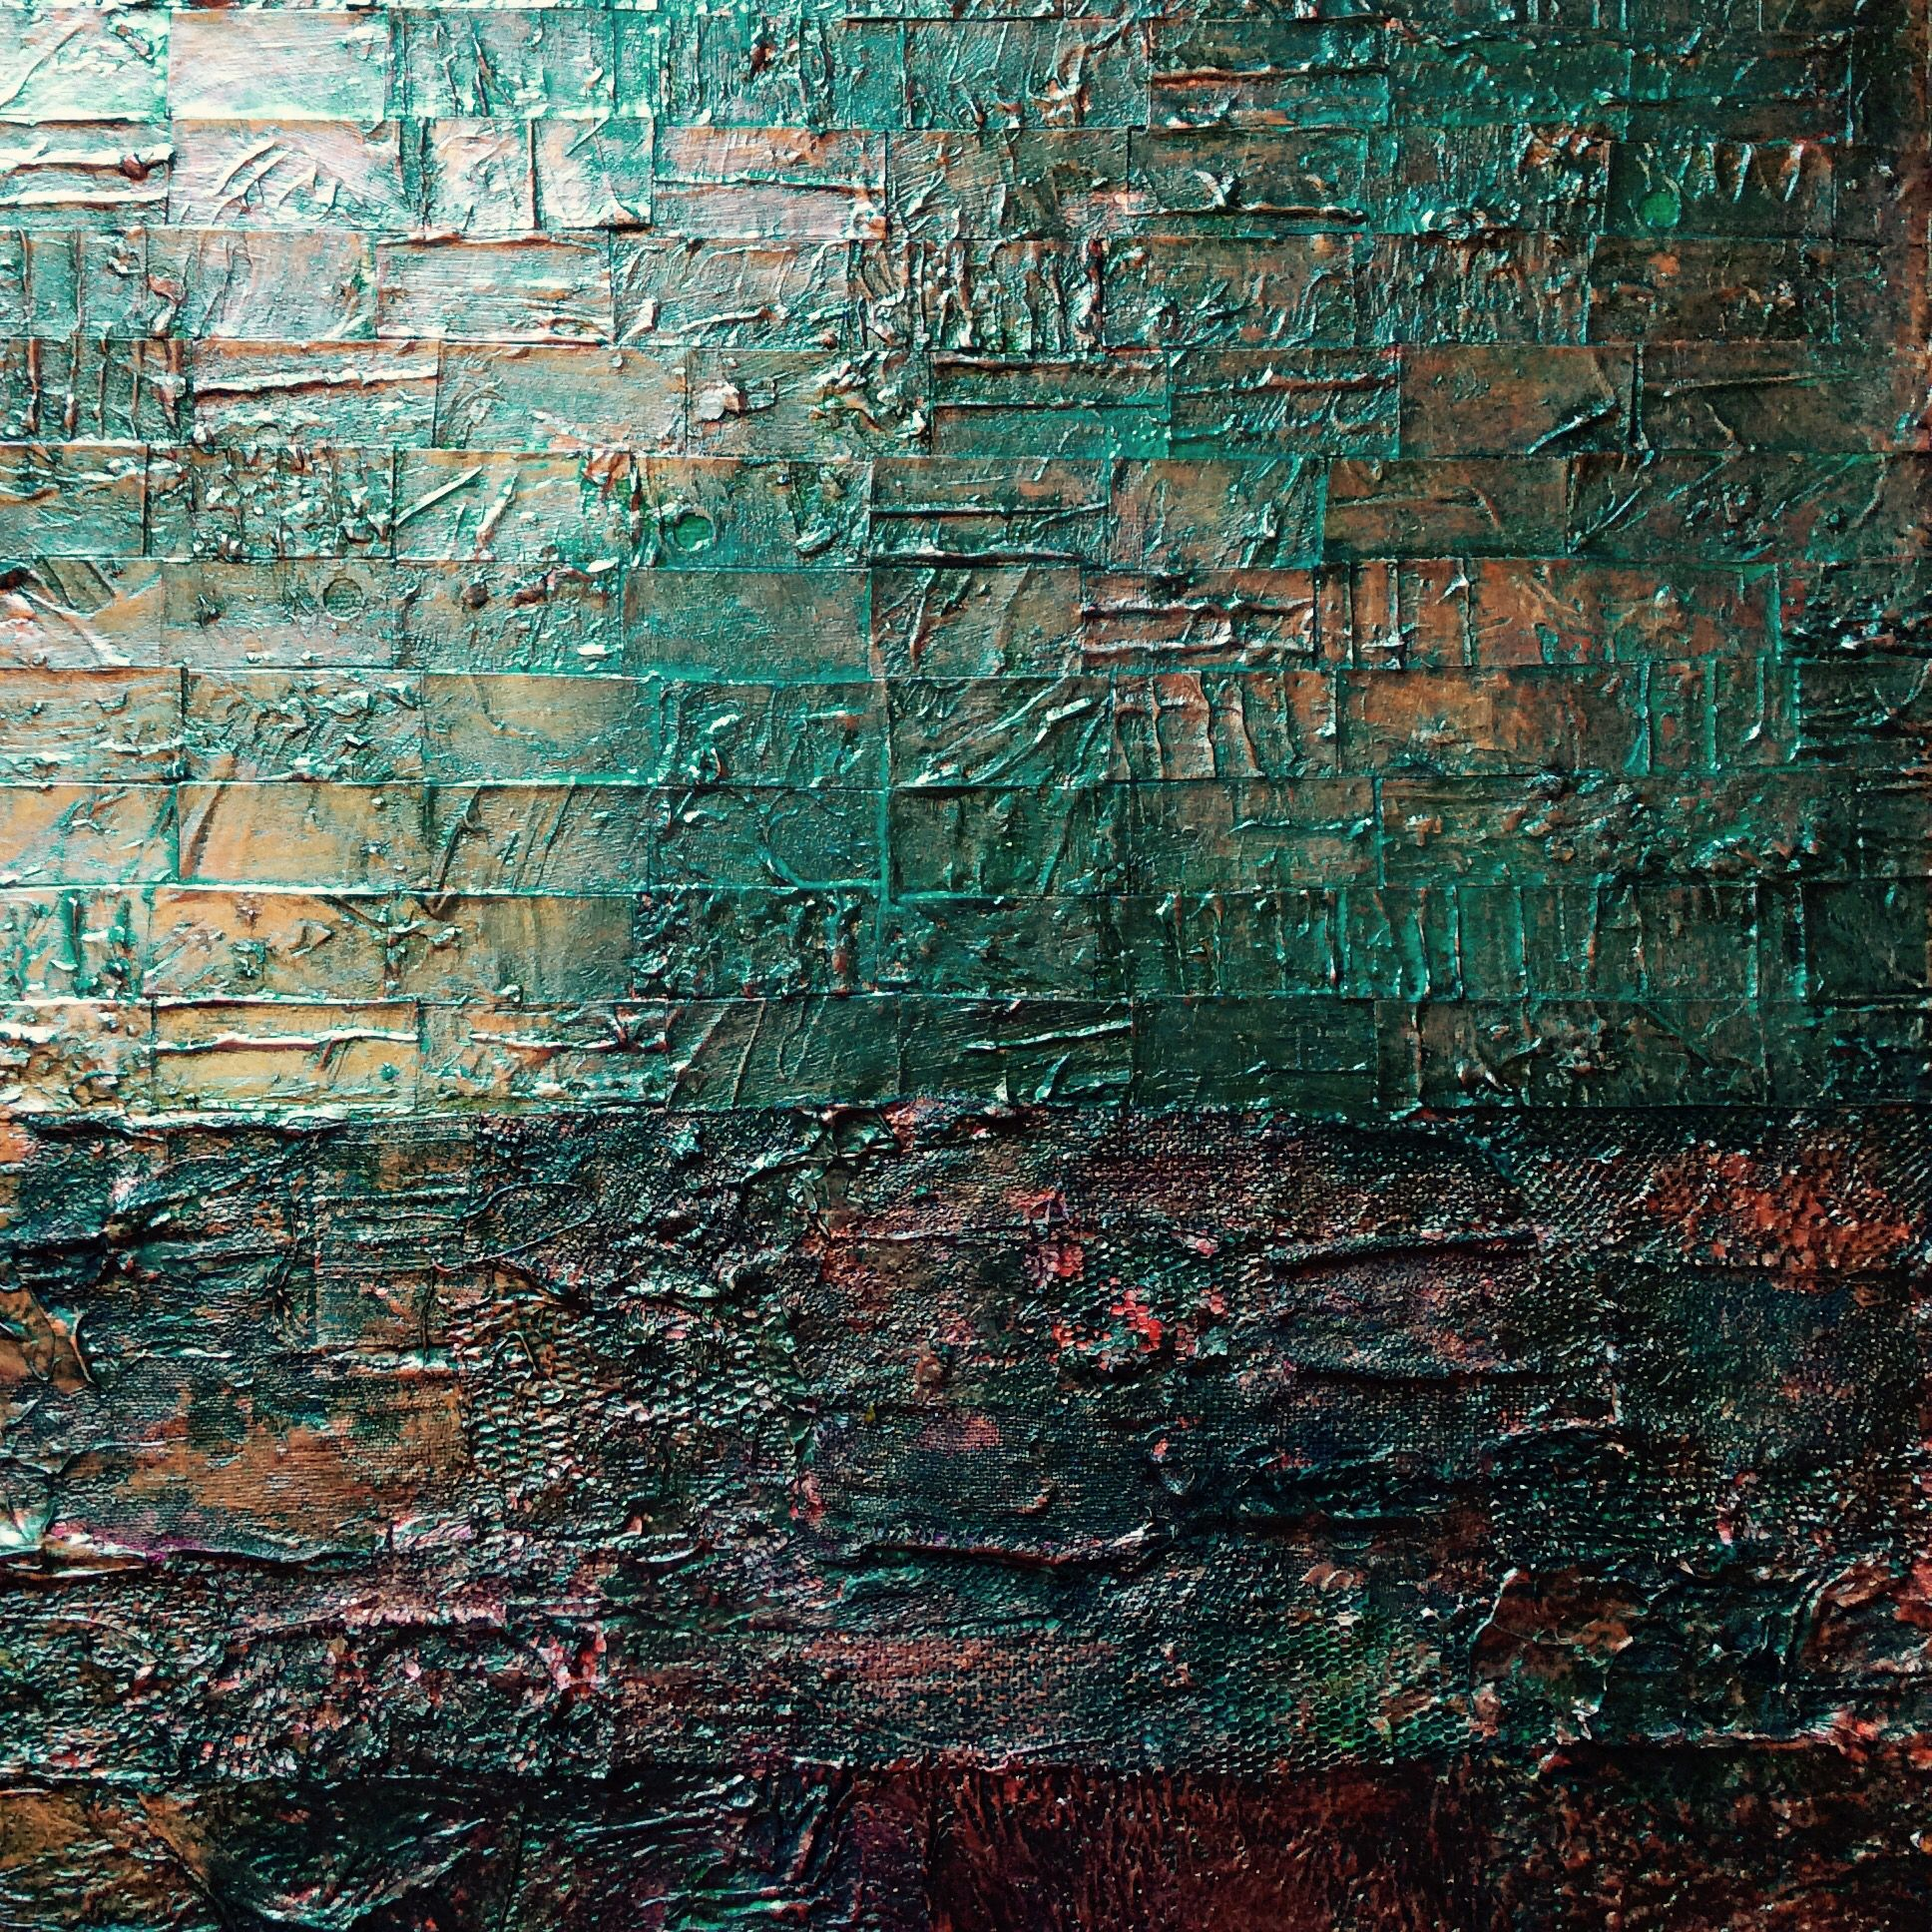 """Lynda Bleyberg. 'Green Reflection'. Detail . Mixed media on box canvas. 16"""" x 16"""" For Sale £350 including shipping . Email: info@ lyndableybergart.co.uk"""